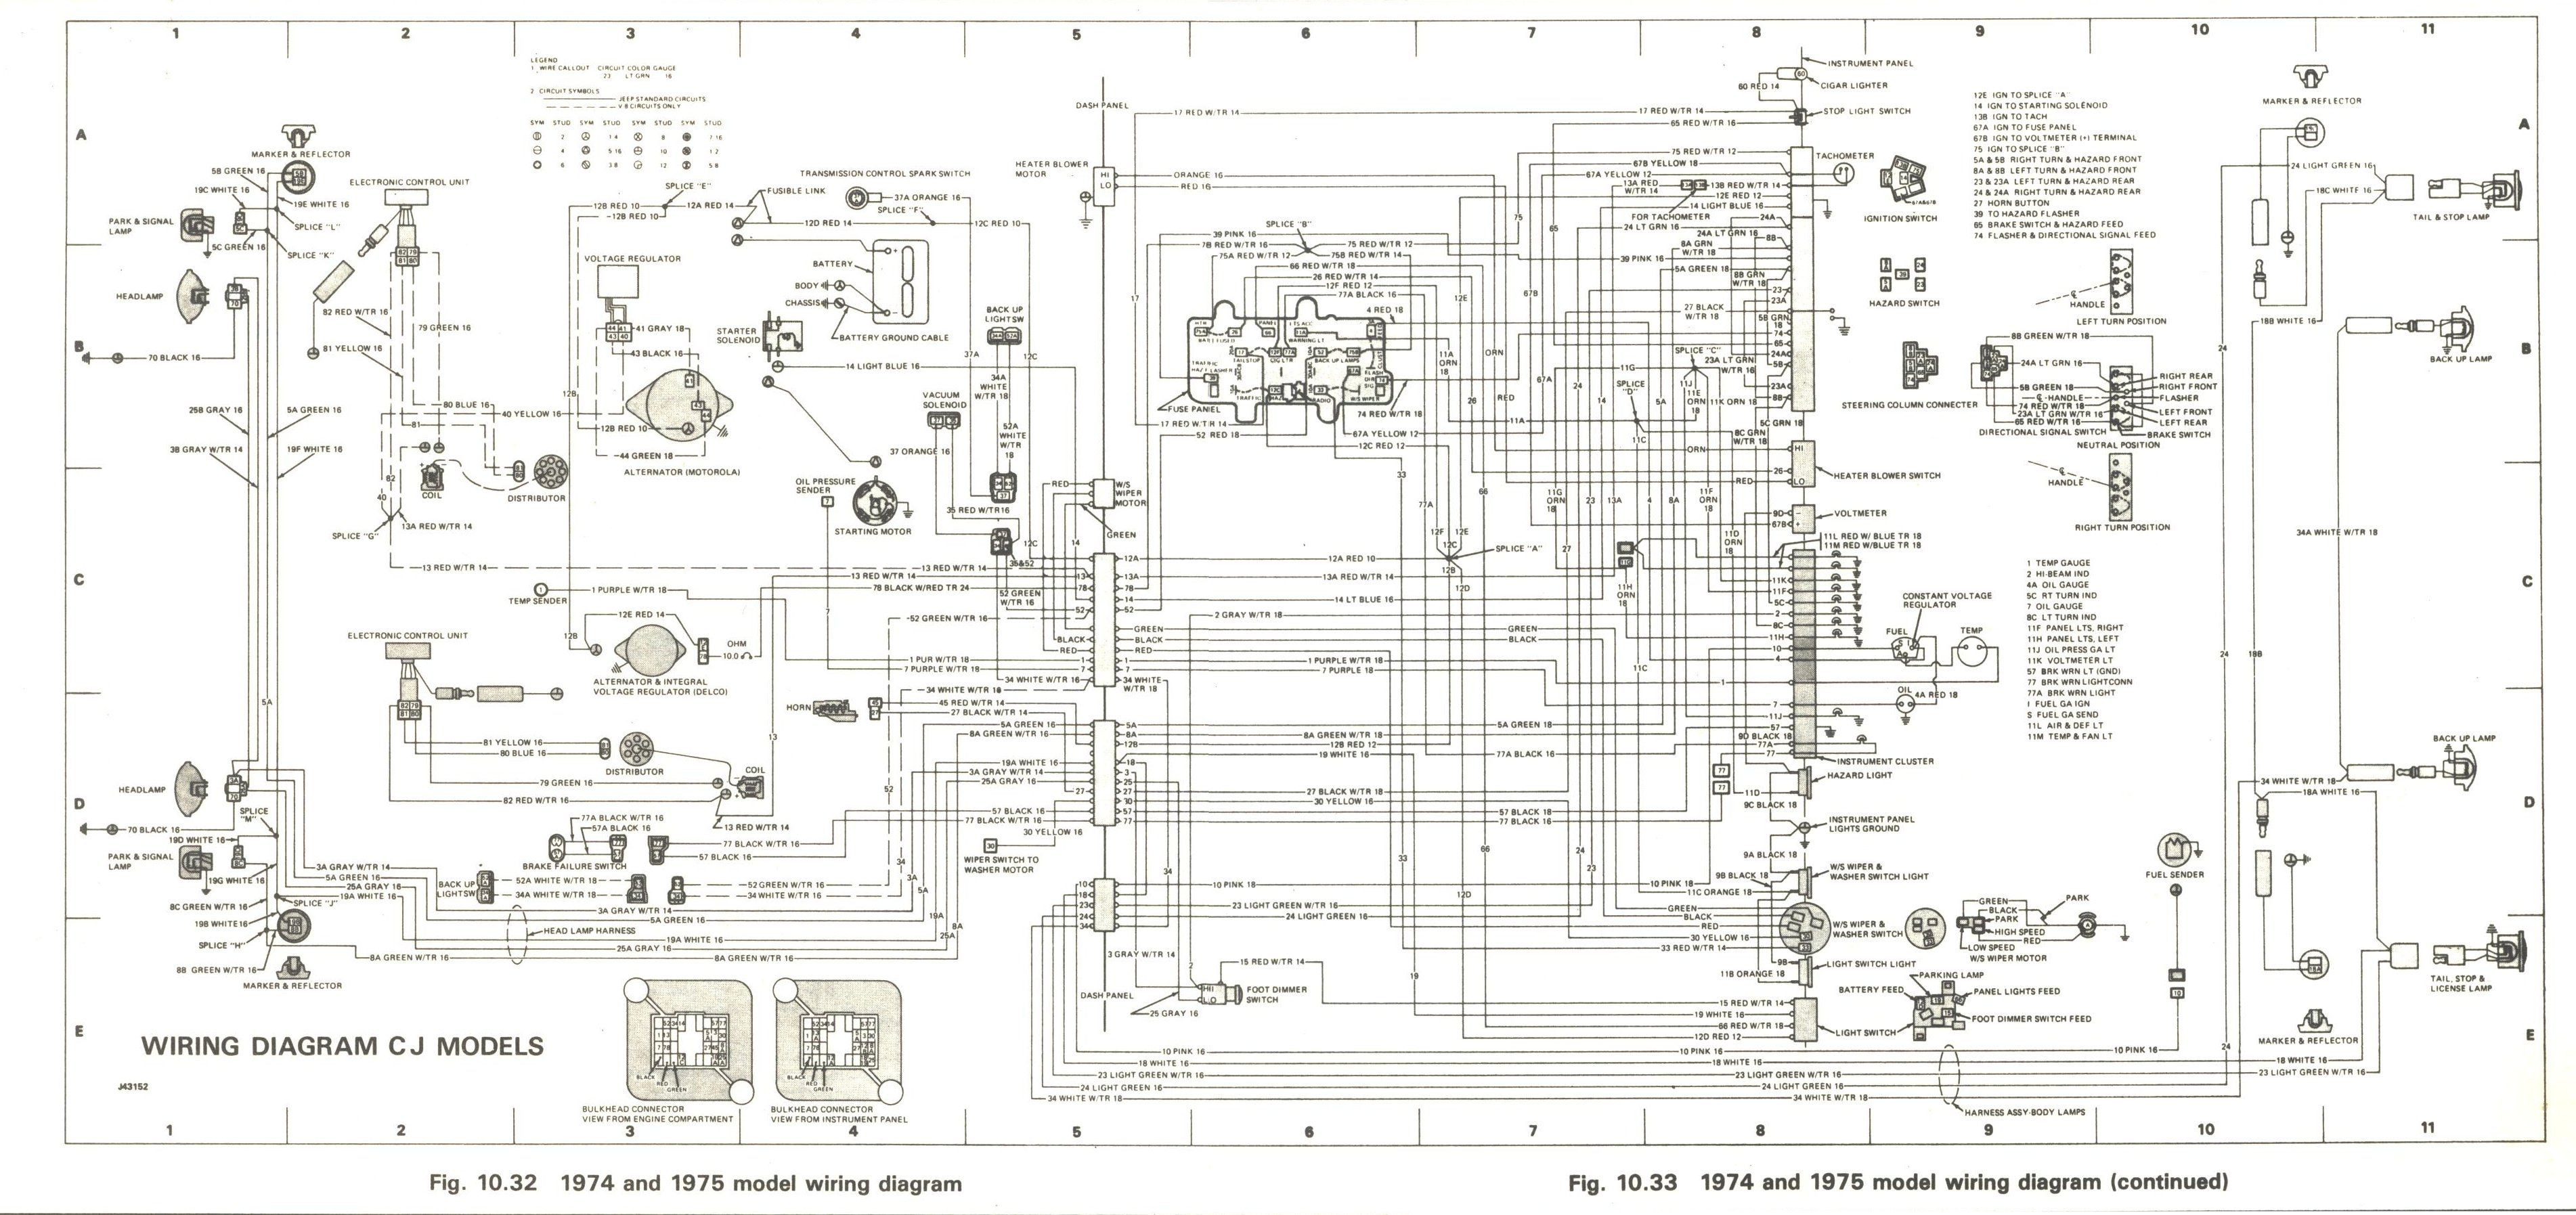 Cj7 Wiring Diagram